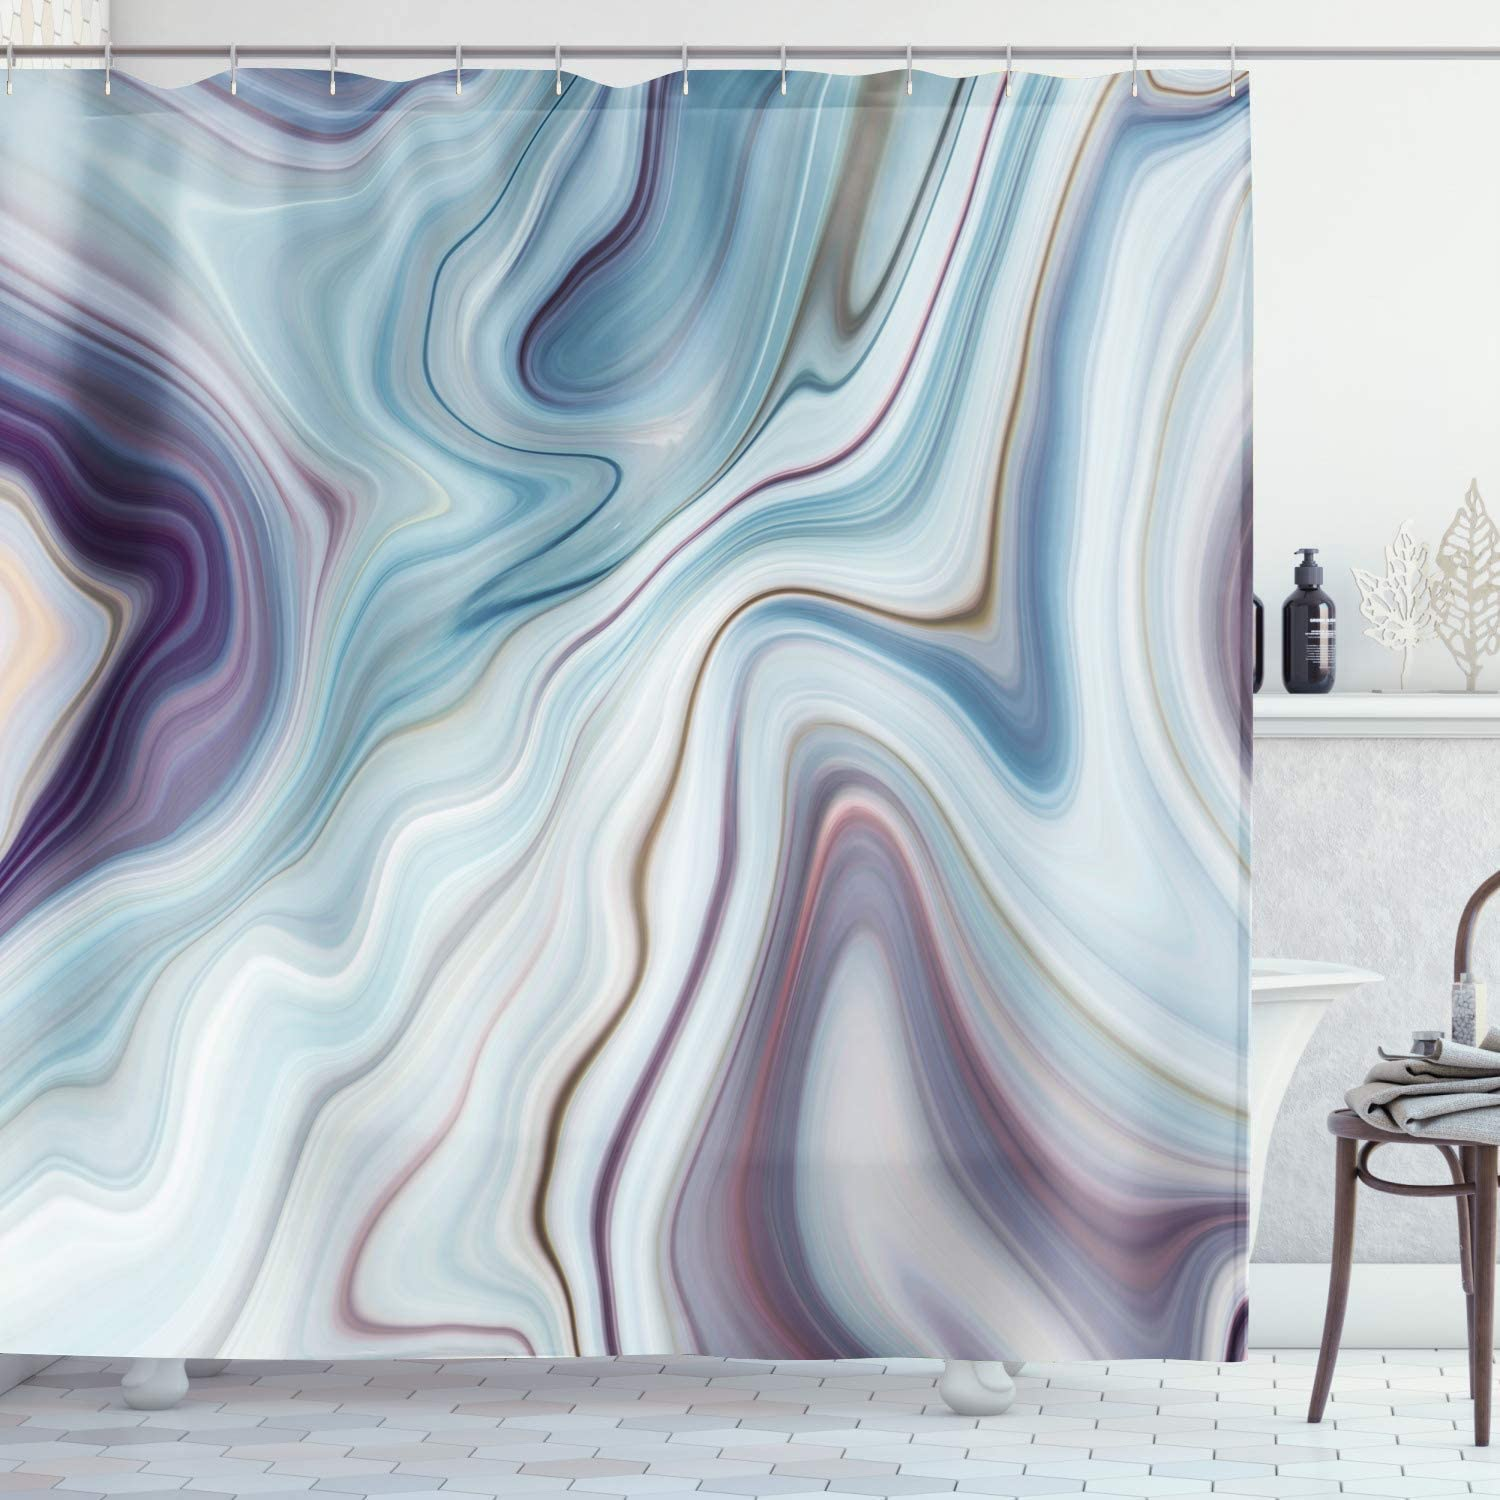 AMBZEK Marble Shower Curtain Granite Ink Liquid Cracked Lines Hazy Stripes Vintage Artistic Natural Abstract Artwork Cloth Fabric Bathroom Decor Set with 12 Pack Hooks 60x71inch, Blue Purple Gray